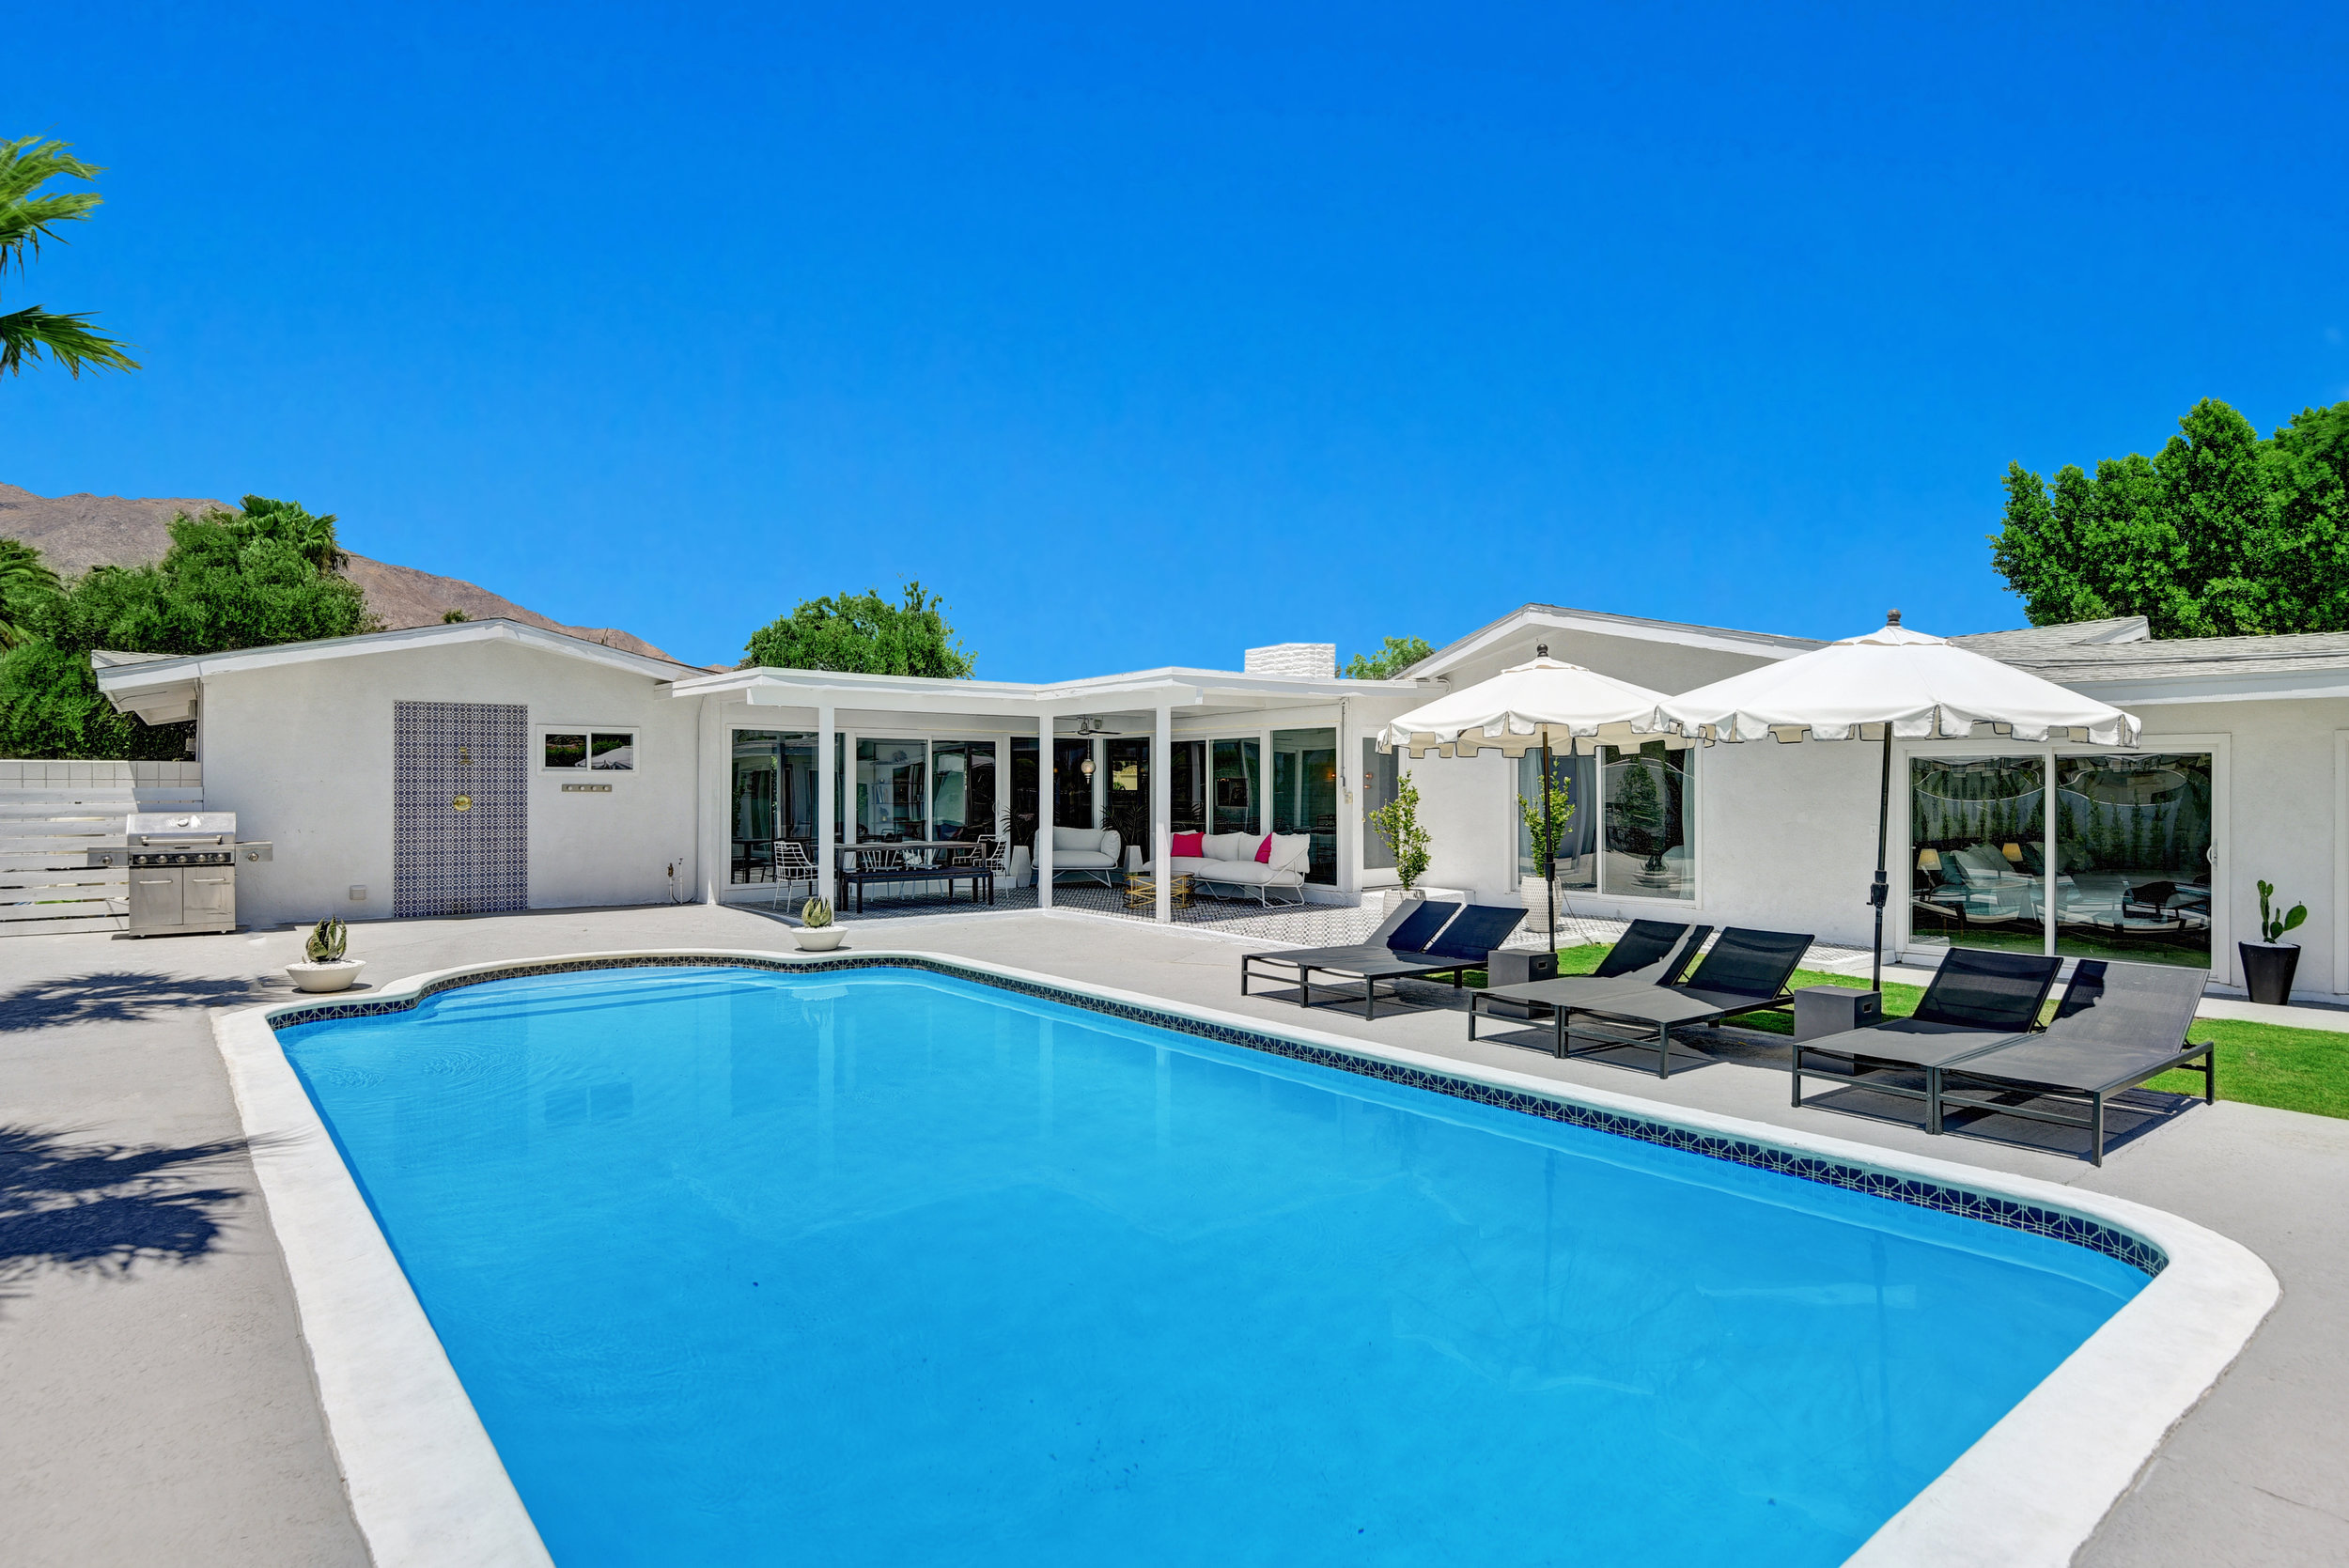 POOL TO HOUSE LOW AND TIGHT.jpg